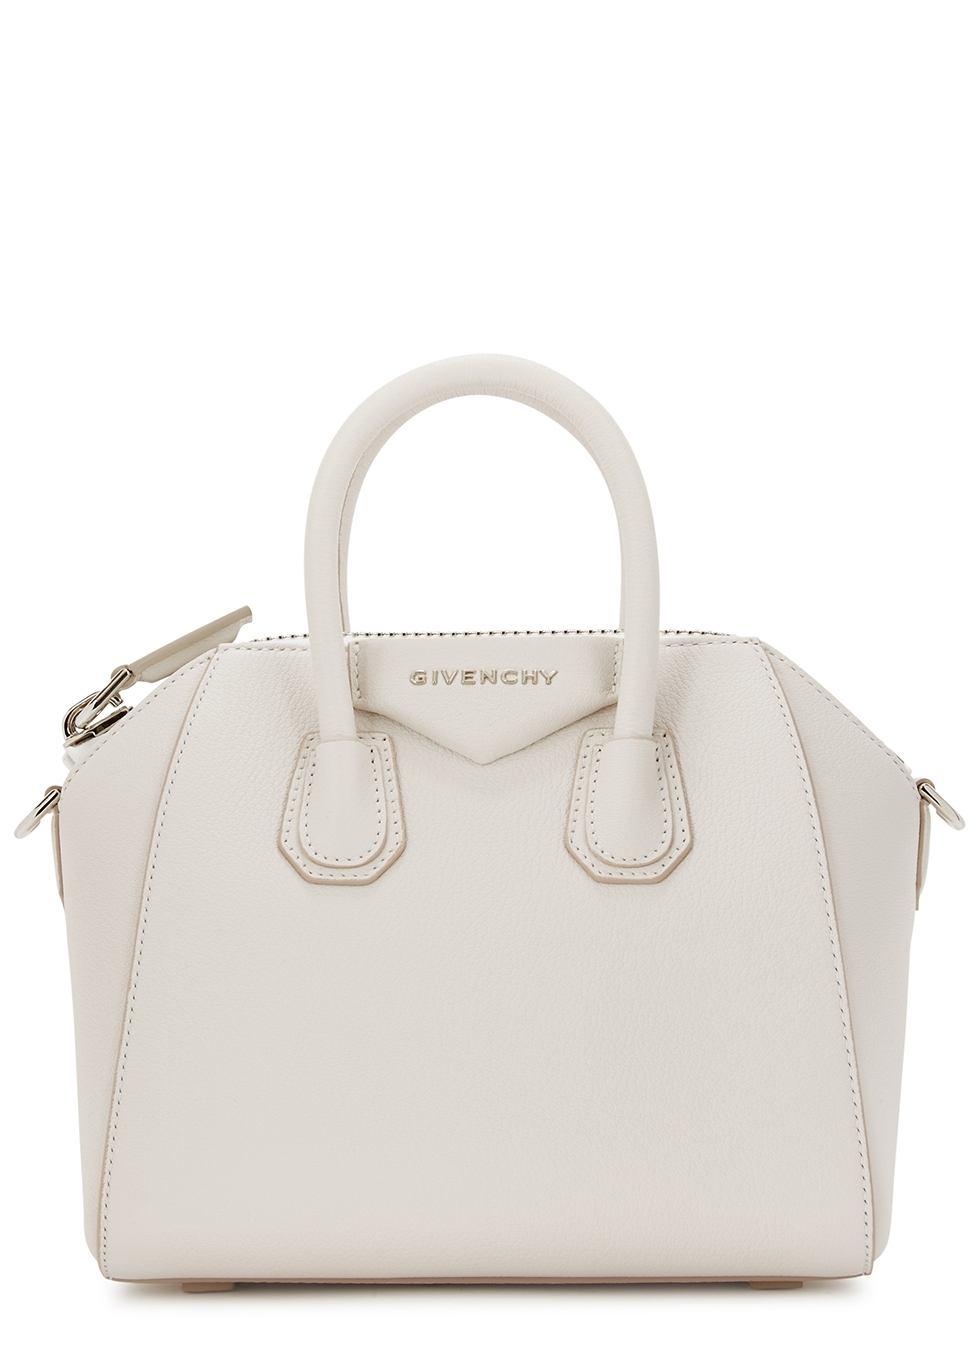 Women s Designer Tote Bags - Leather   Canvas - Harvey Nichols 6ce504ca78689